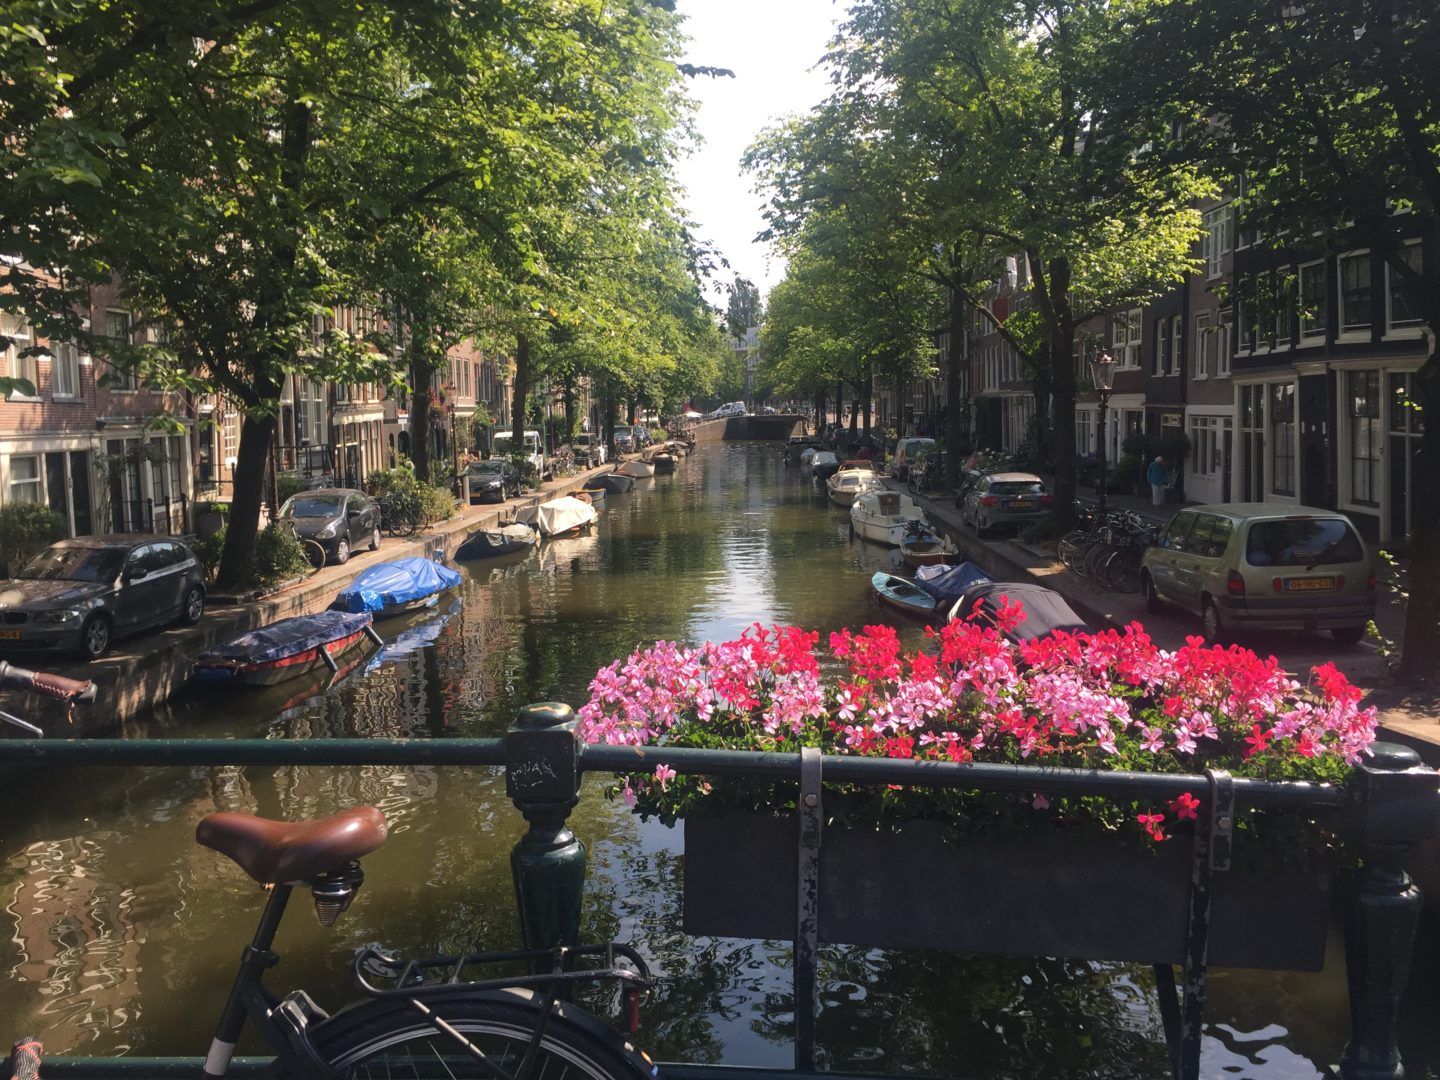 An Amsterdam canal with a bike and flower box.